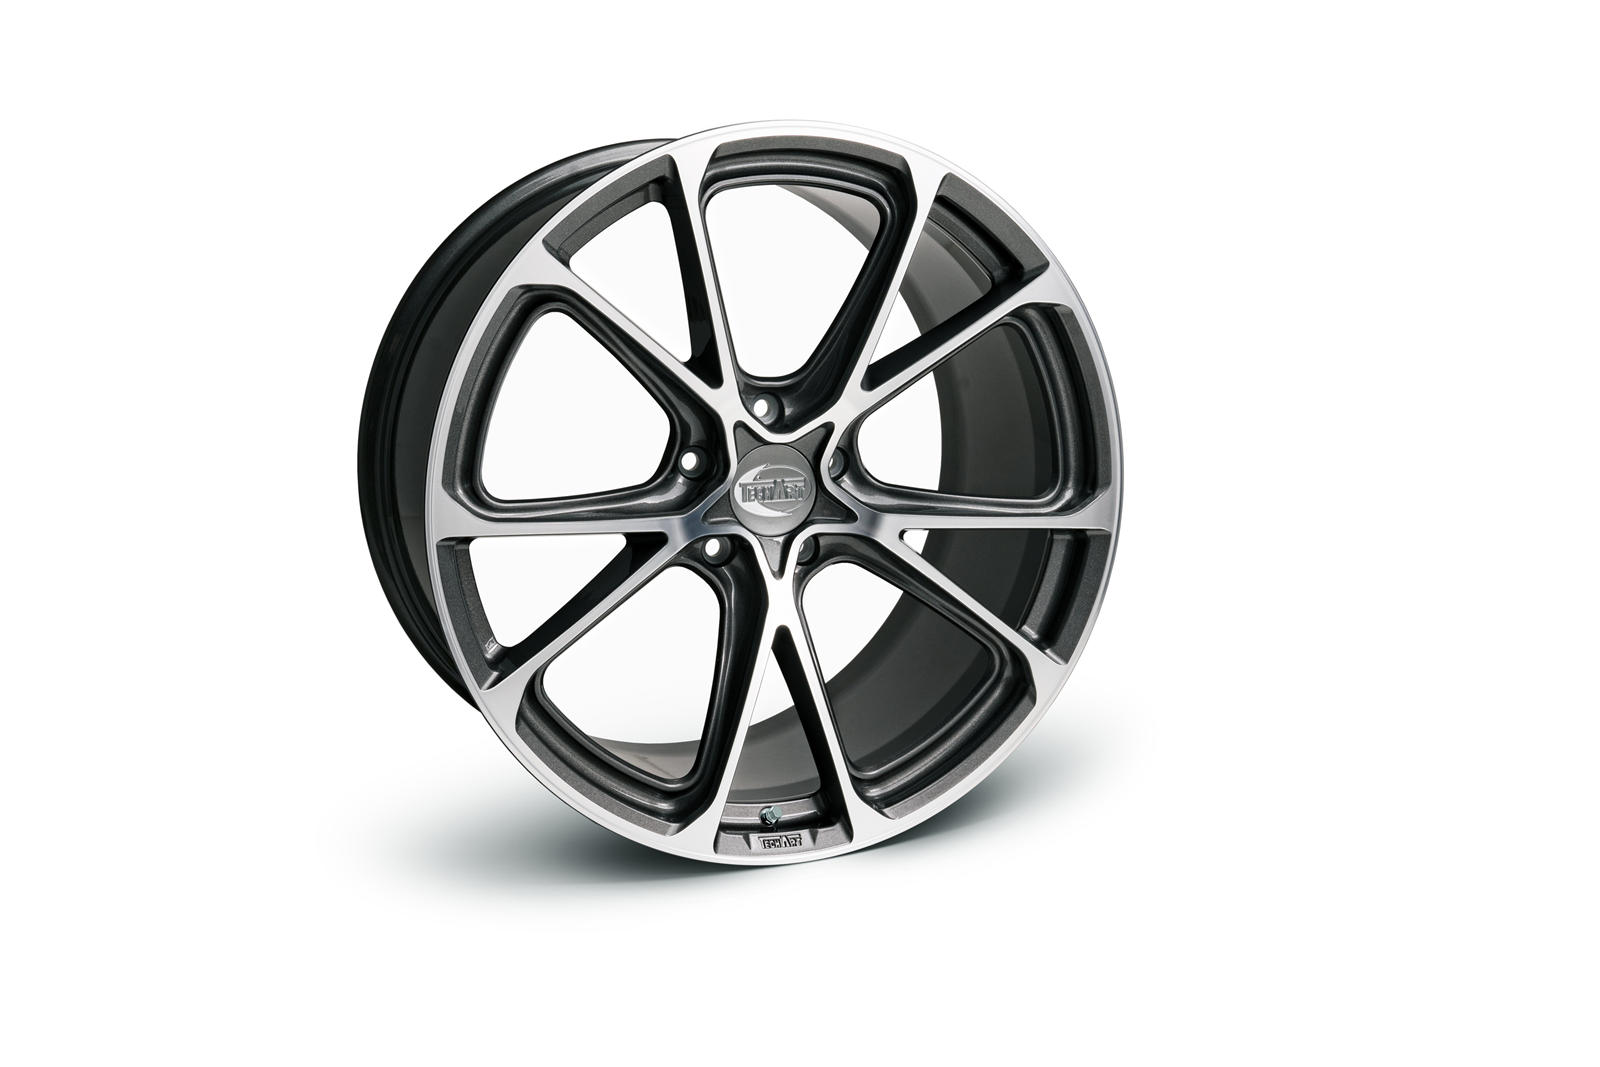 techart-formula-vi-aftermarket-wheels-taycan-4-jpg.jpg